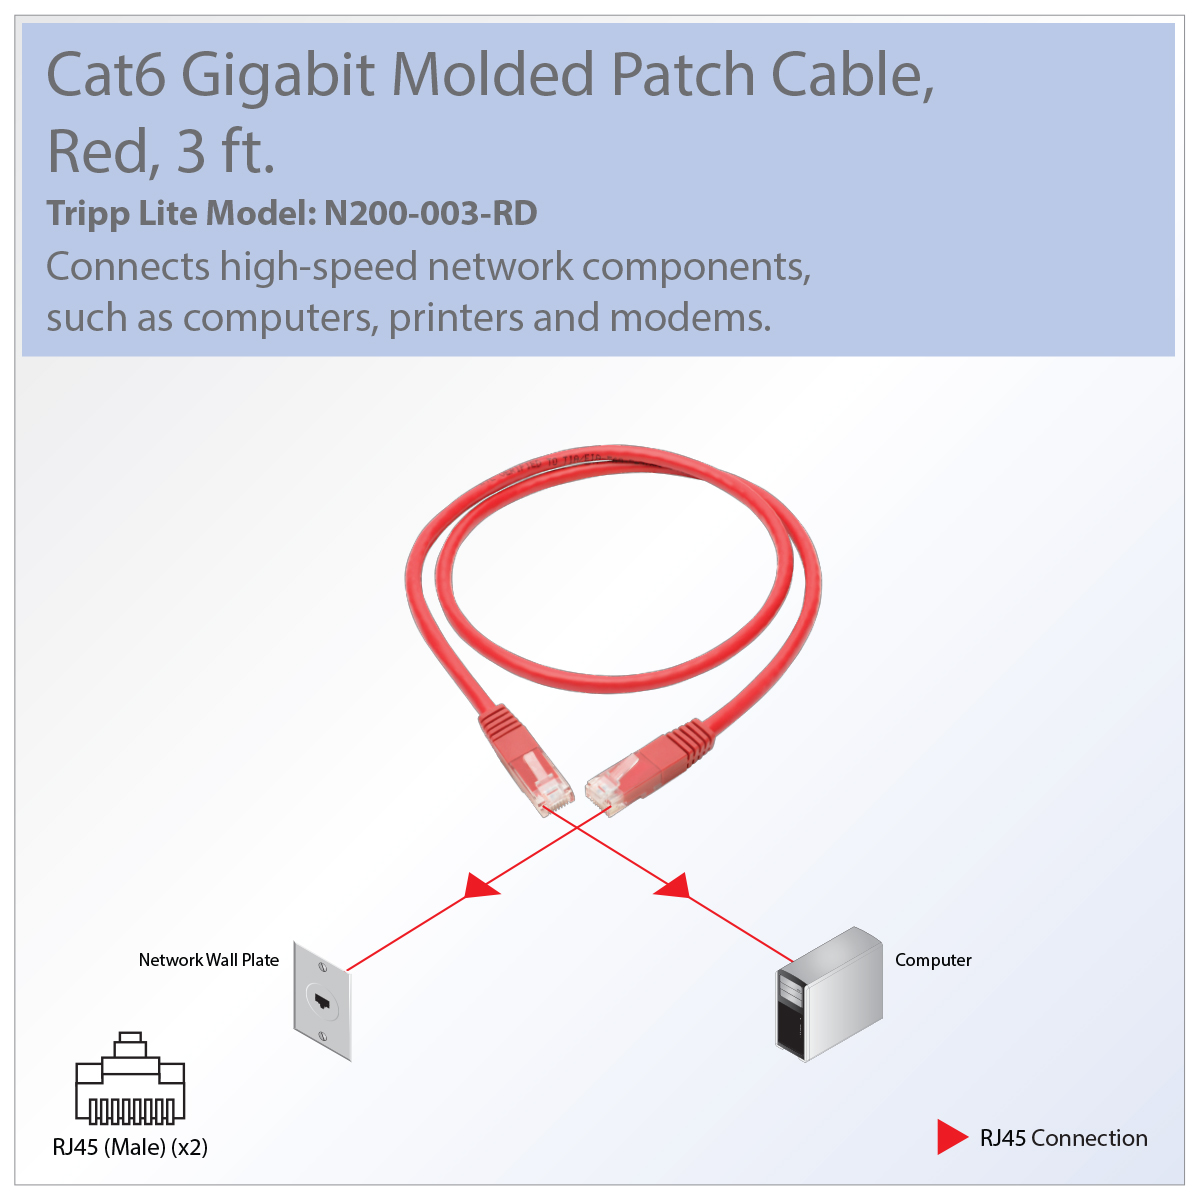 Tripp Lite Premium Cat5 Cat5e Cat6 Gigabit Molded Patch Cable Ethernet Wiring Great For Connecting Components In Bandwidth Heavy Home Office Networks